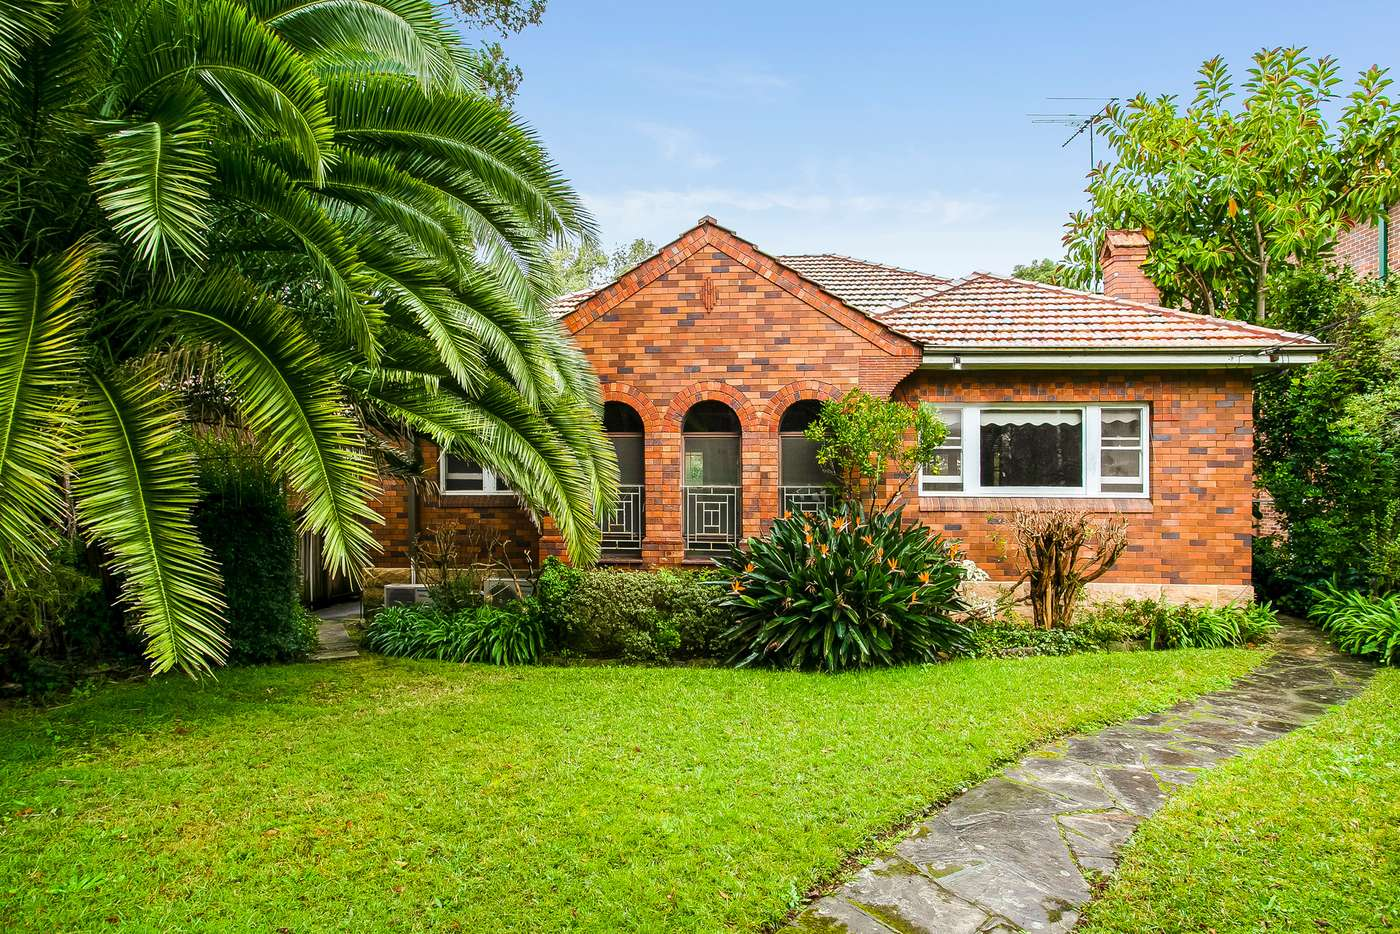 Main view of Homely house listing, 1 Woodside Avenue, Lindfield NSW 2070